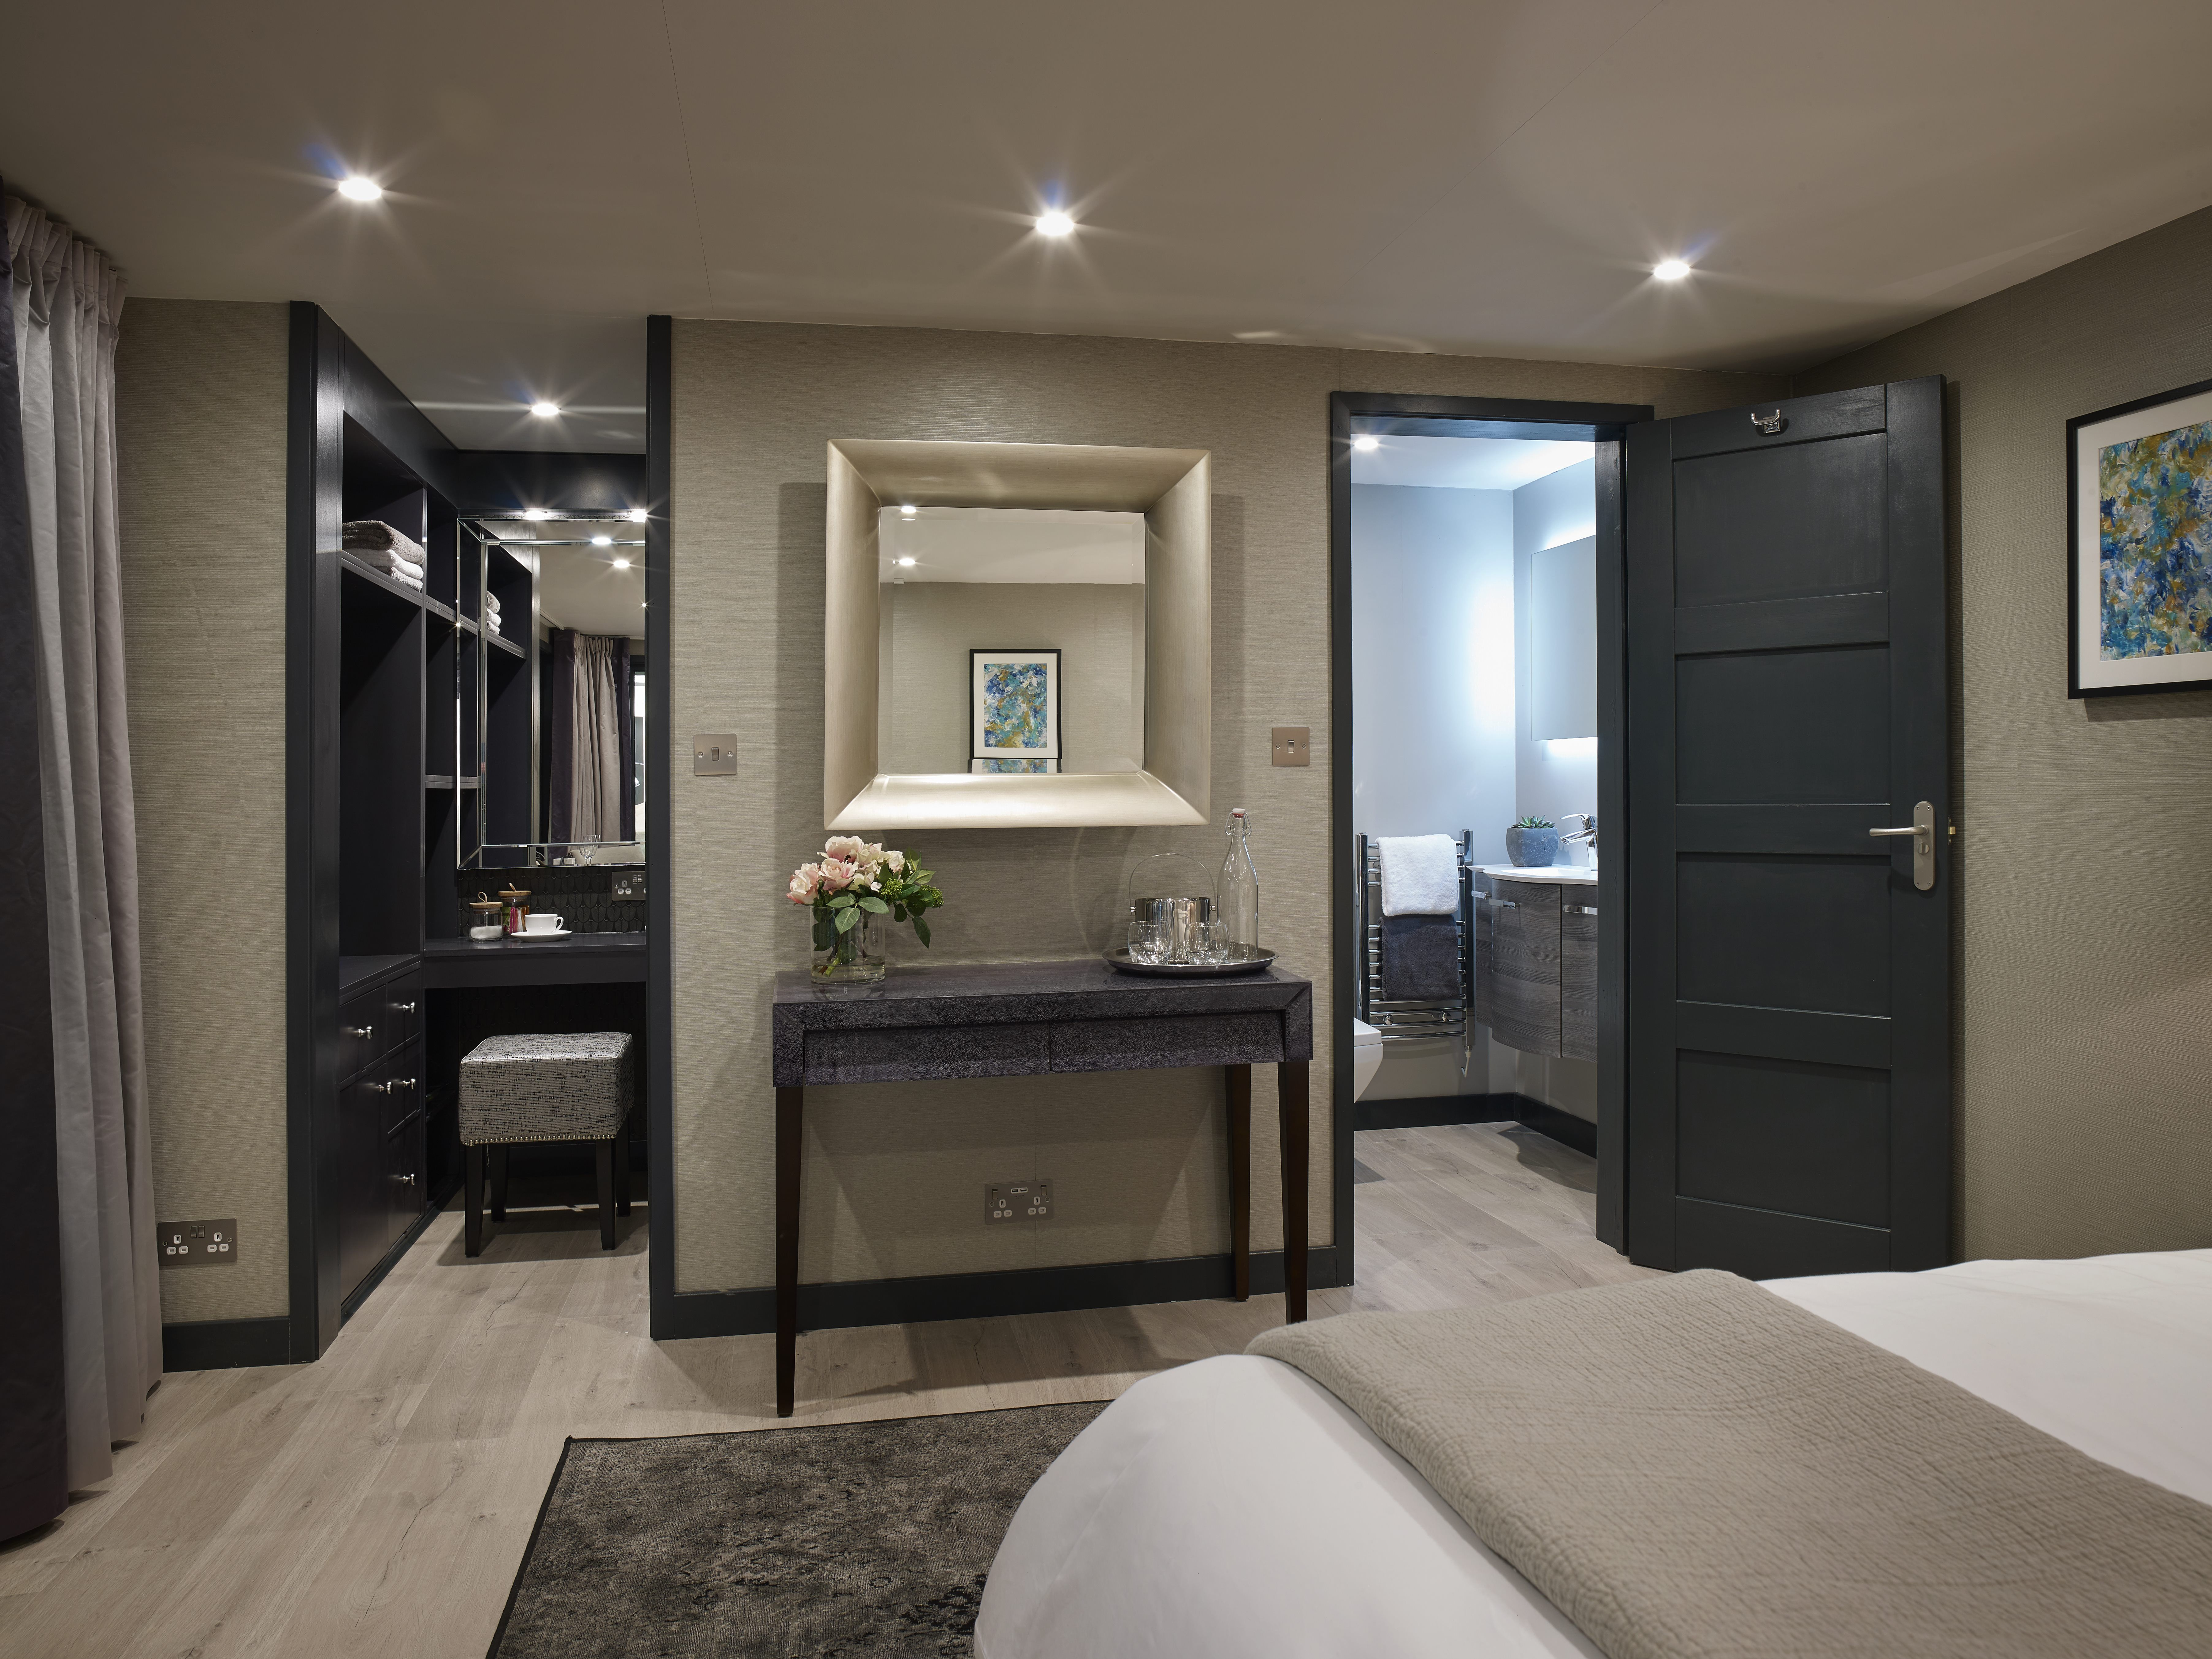 Best An En Suite Shower Room And Separate Dressing Area With 400 x 300